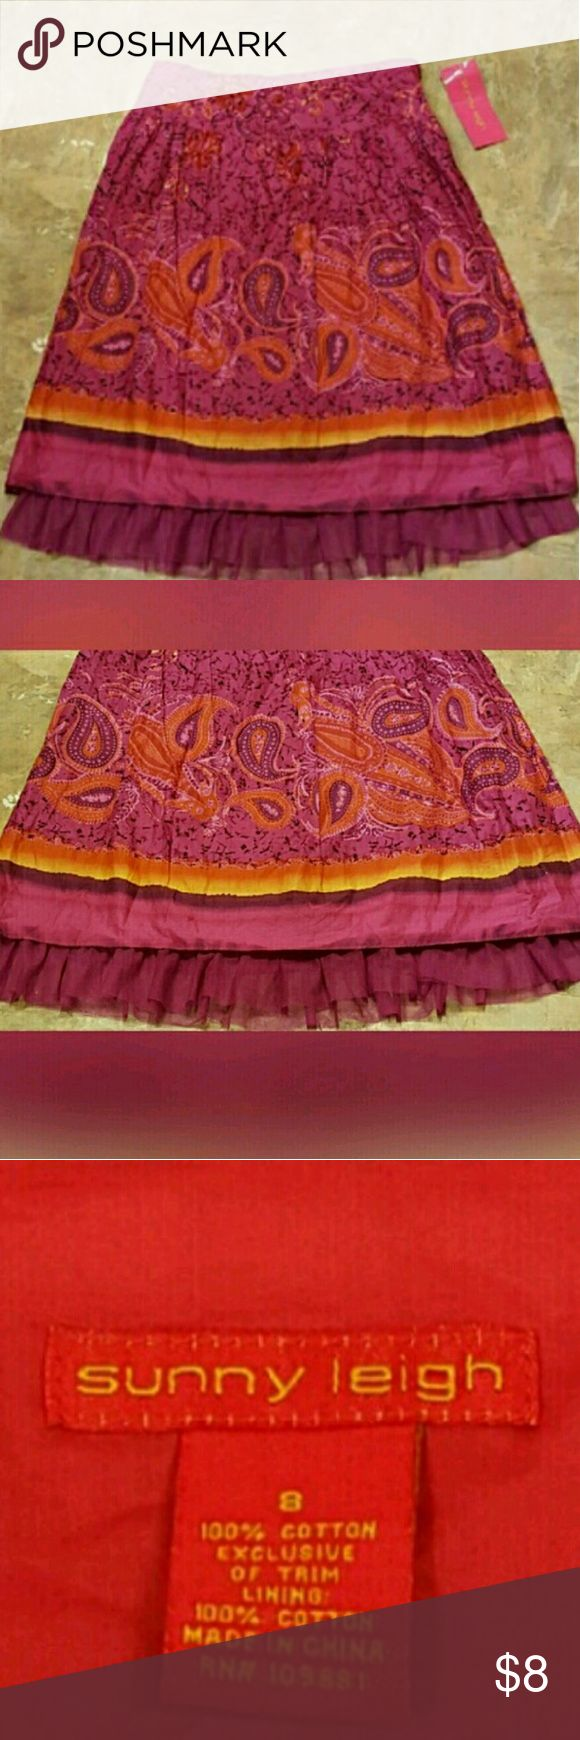 Sunny Leigh skirt Sunny Leigh skirt size 8 the color of pink and orange blend with 100 percent cotton. No stains no tears anywhere. Please feel free to ask any questions you may have before purchasing. And thank you for shopping my closet! Sunny Leigh  Skirts Midi